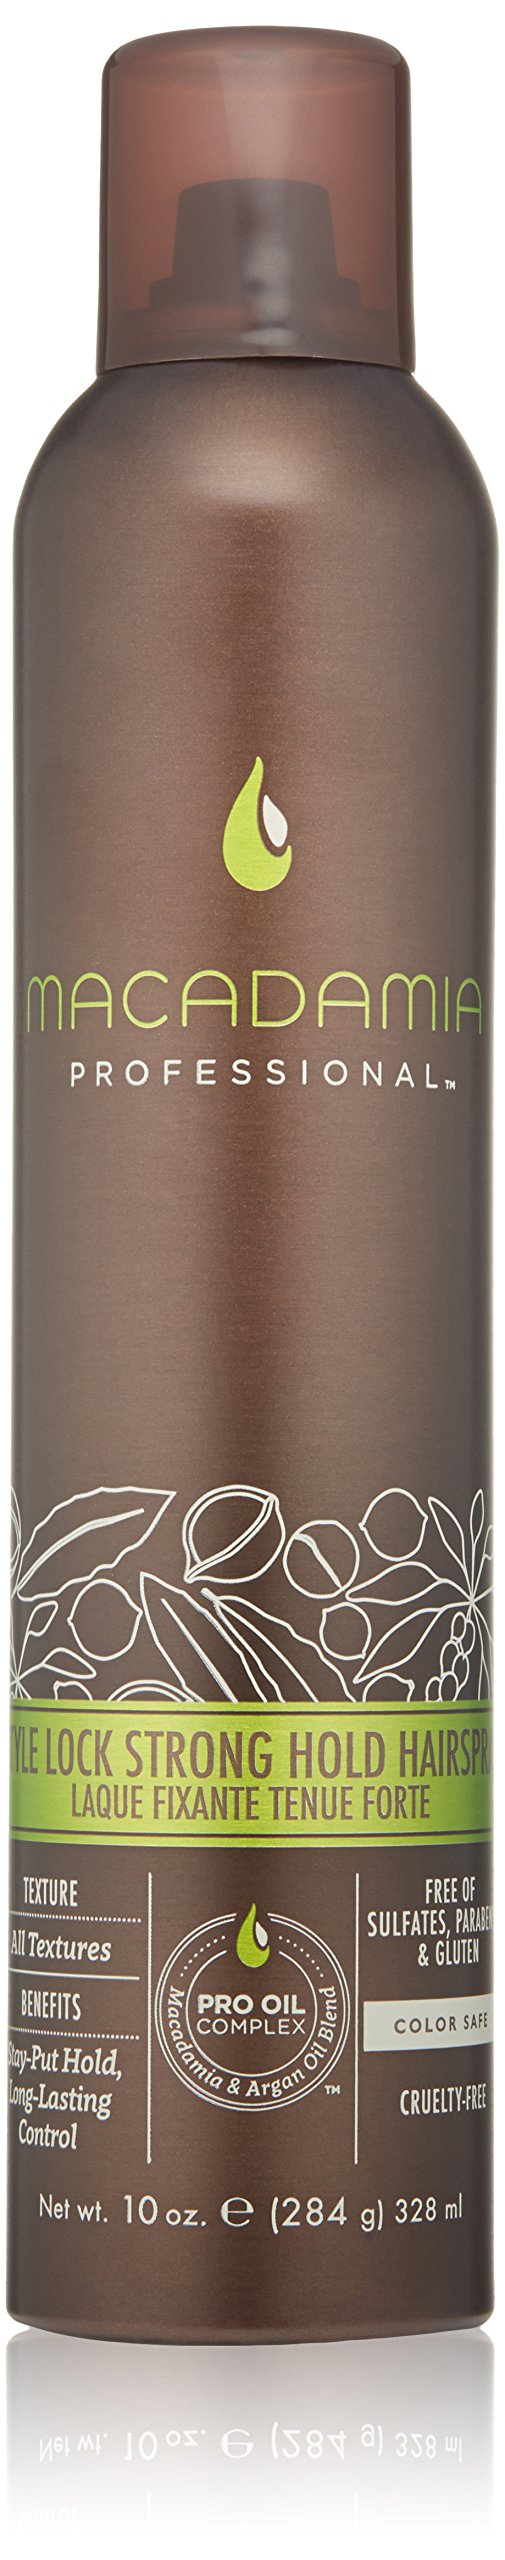 Macadamia Professional Style Lock Strong Hold Hairpsray, 10 oz.